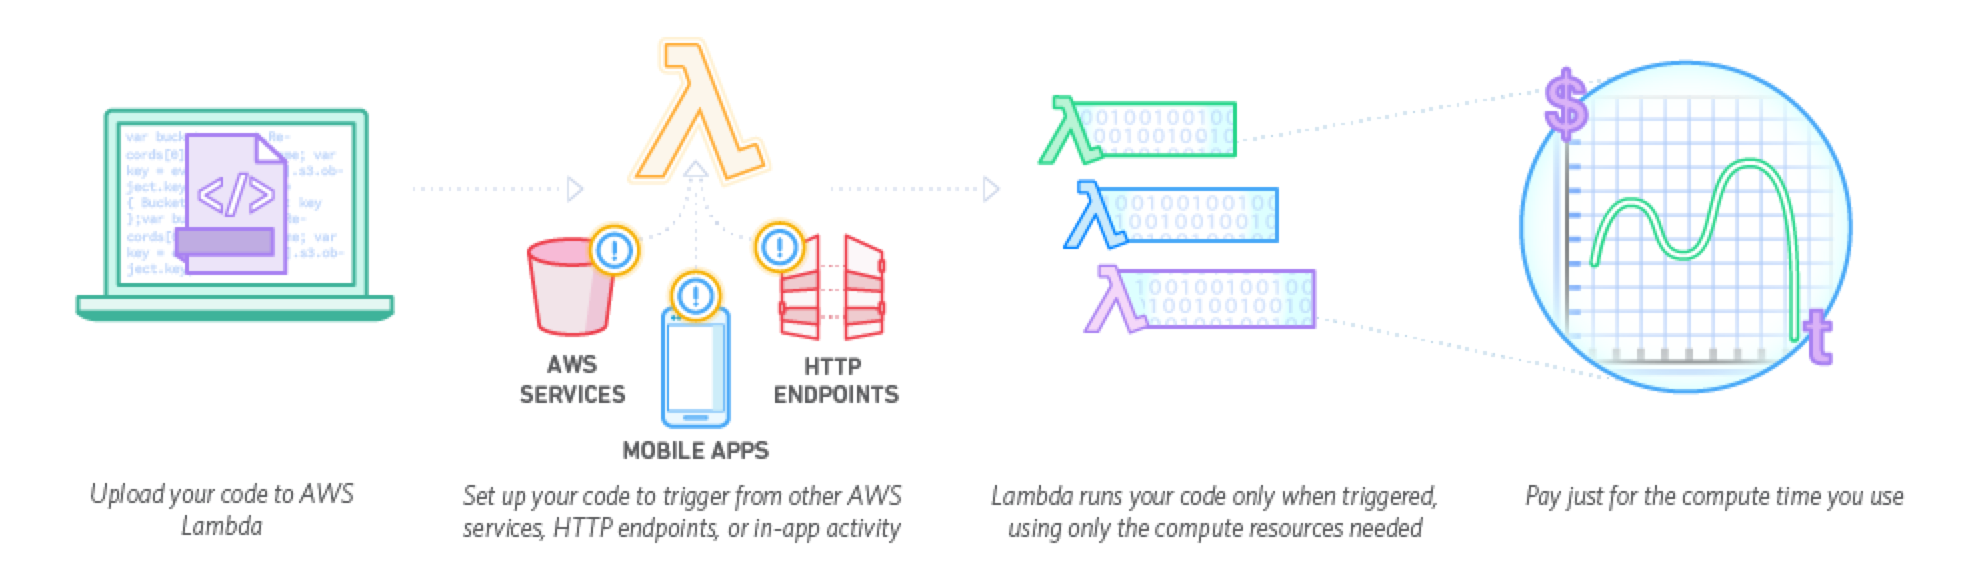 Powering Mobile Backend Services with AWS Lambda and Amazon